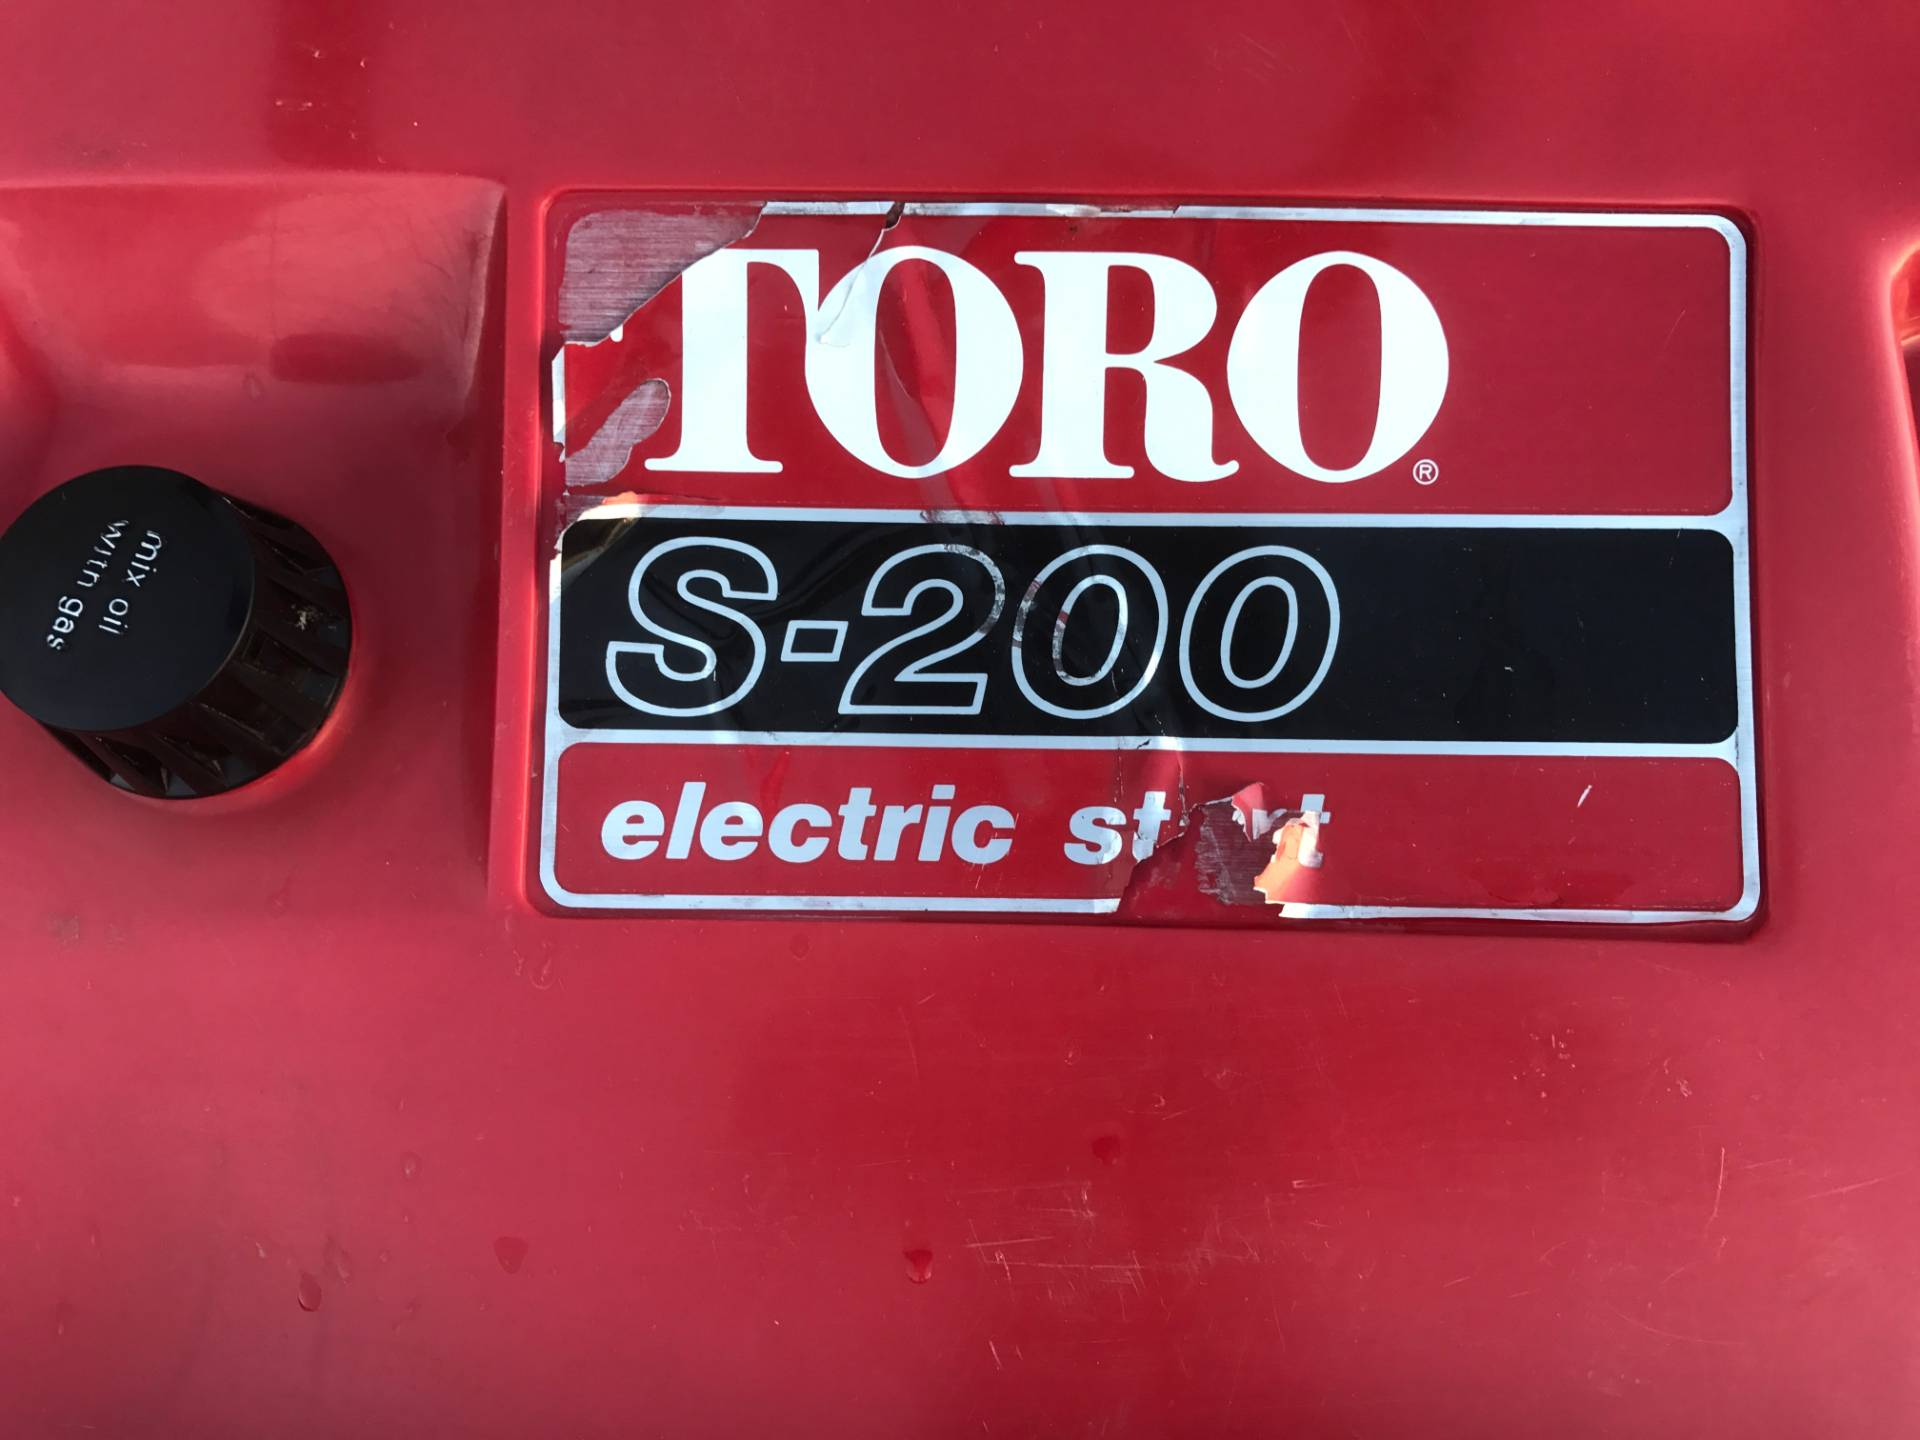 0 Toro S200 in Atlantic, Iowa